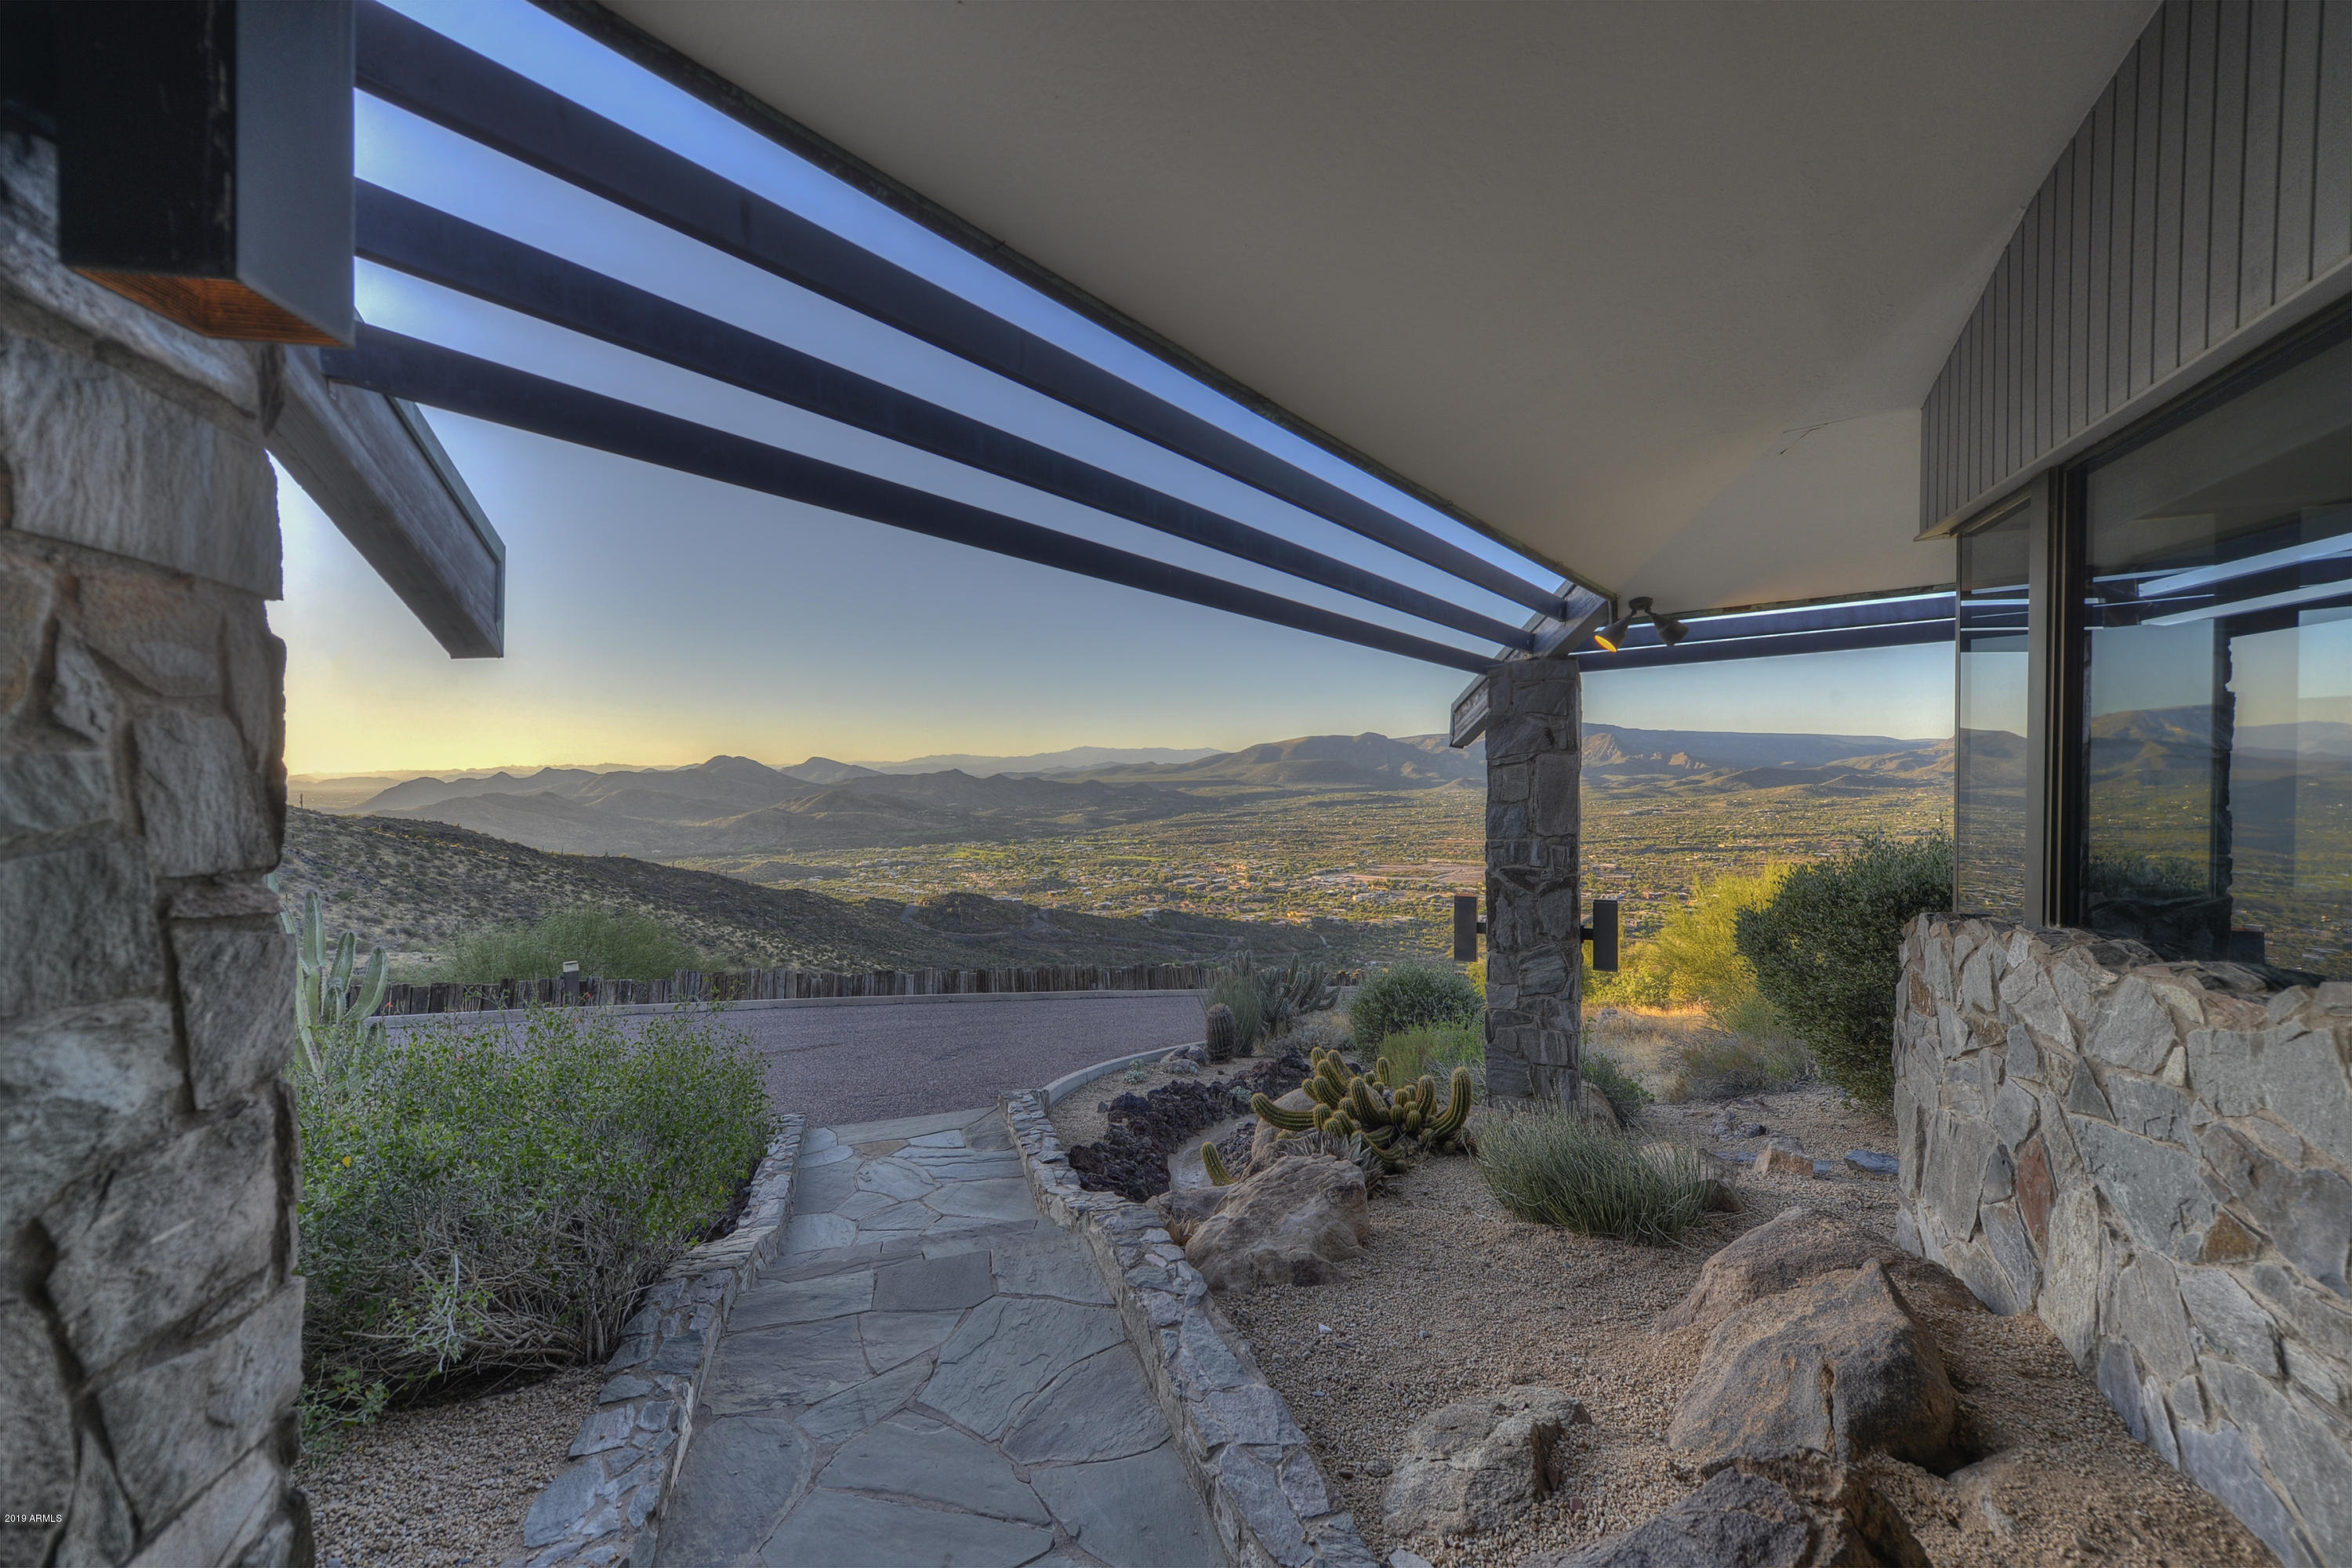 MLS 5990391 6600 E Hawksnest Road, Carefree, AZ 85377 Carefree AZ One Plus Acre Home